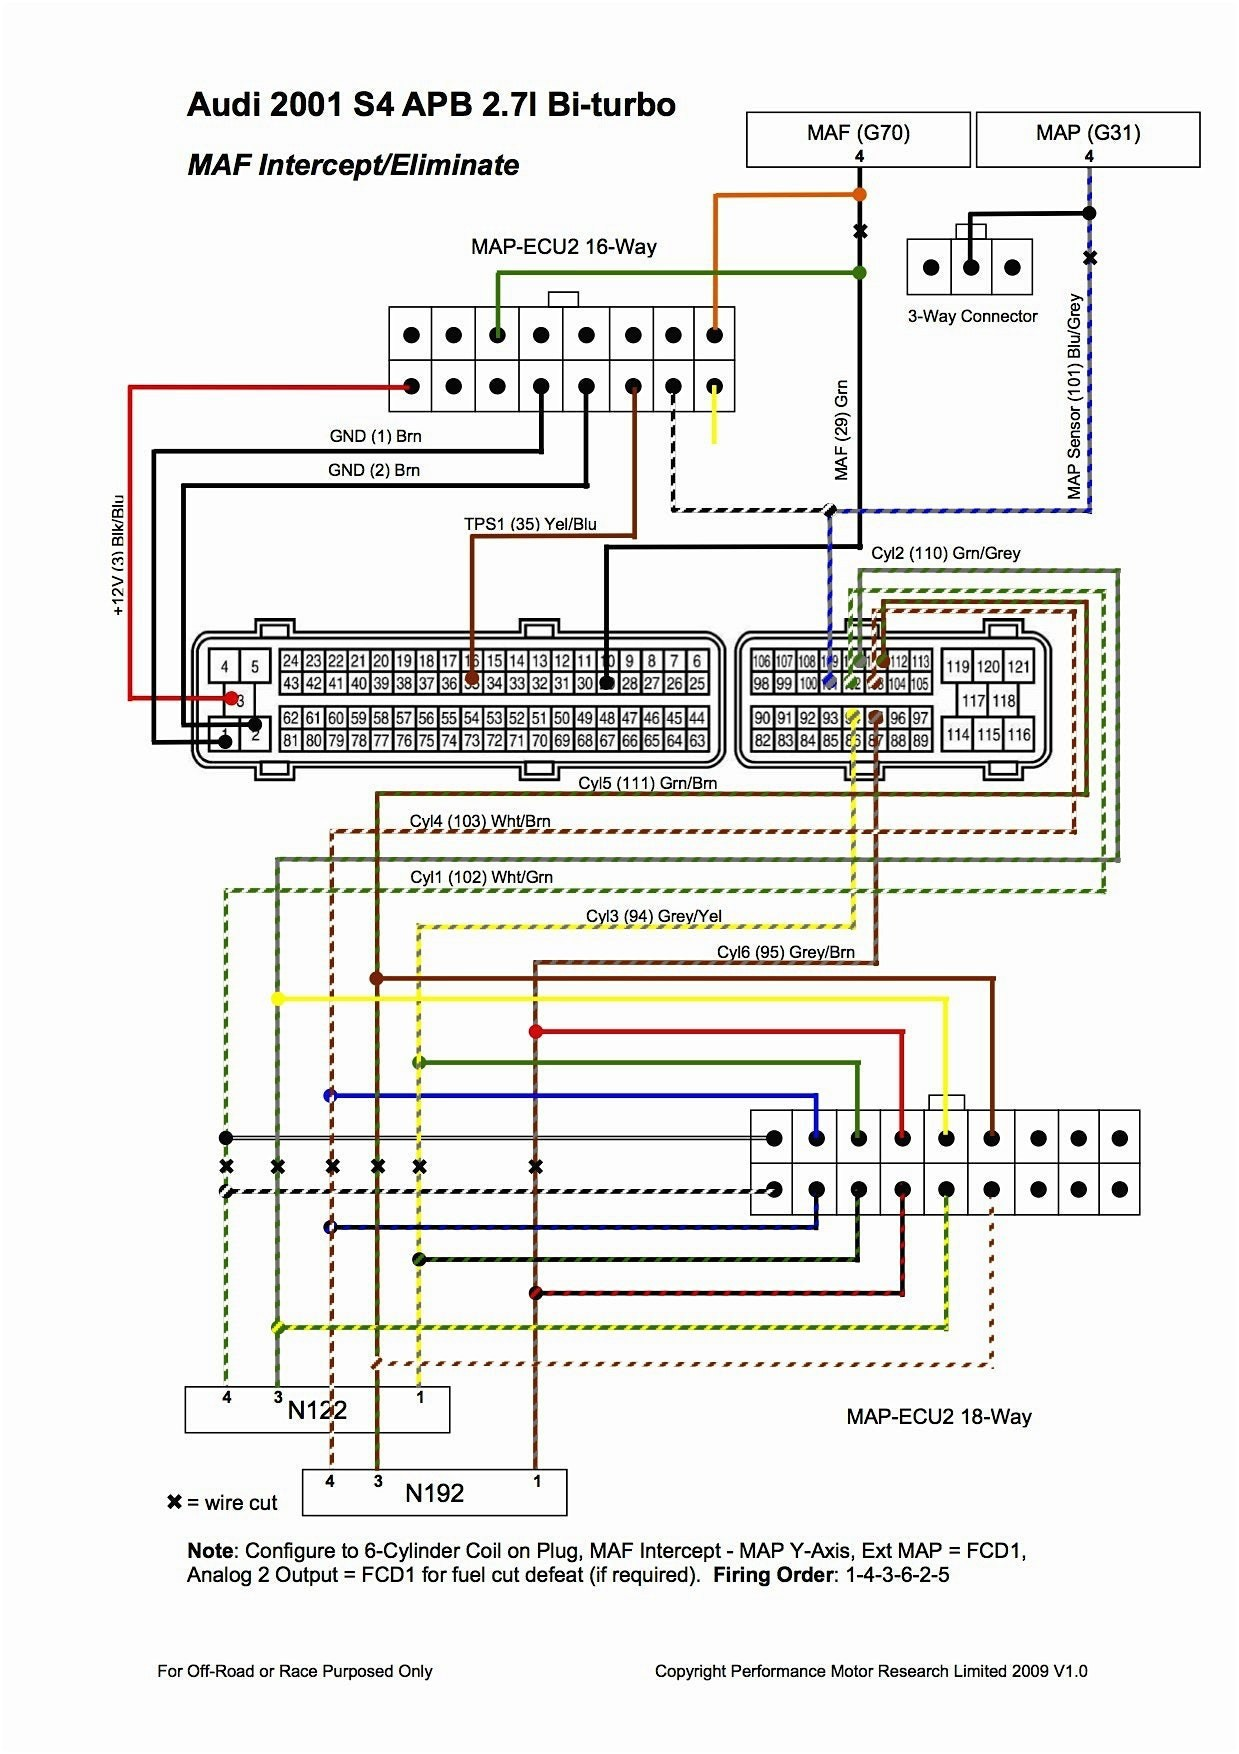 Radio Wiring Diagram For 1996 Ford Ranger